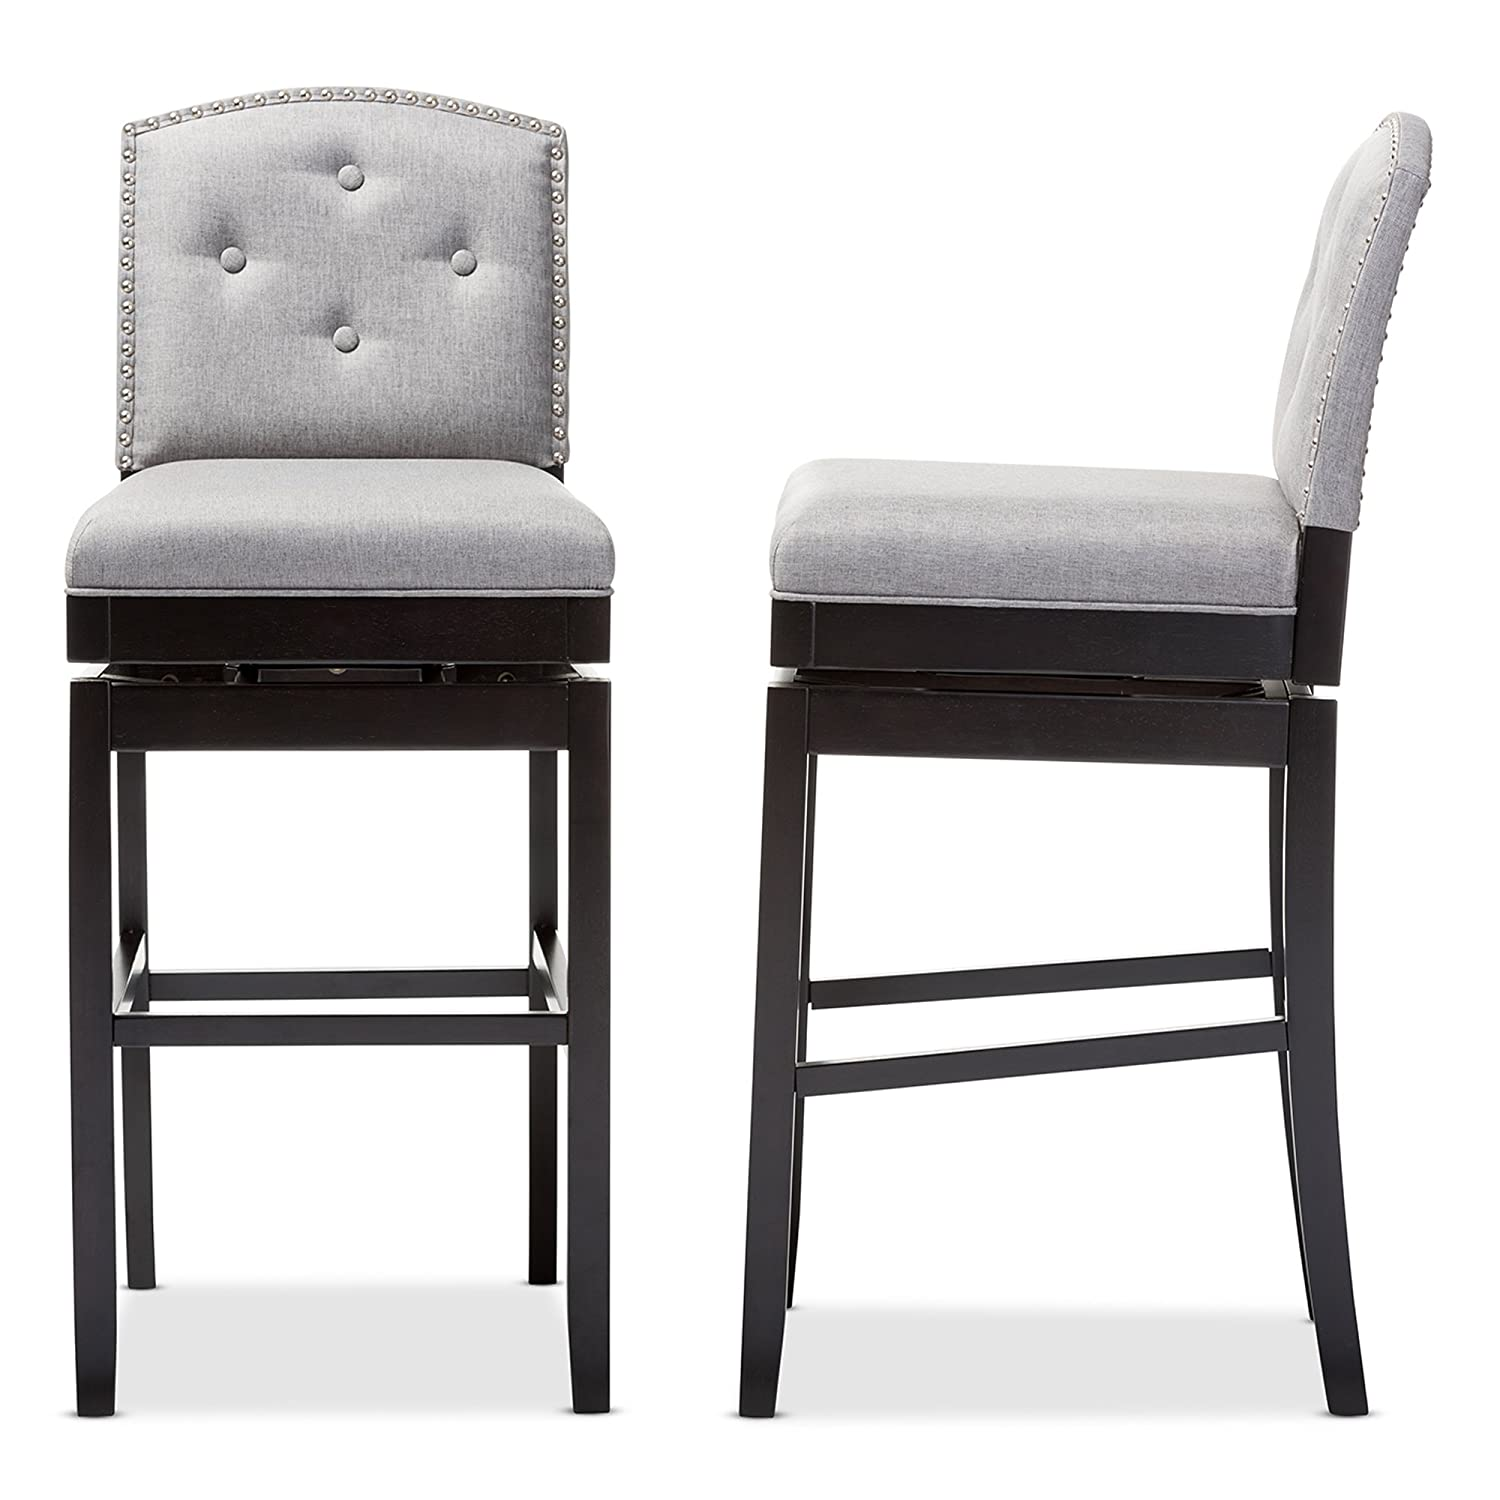 carbon bar stool wid zoom furn gray phoenix web stools hero hei